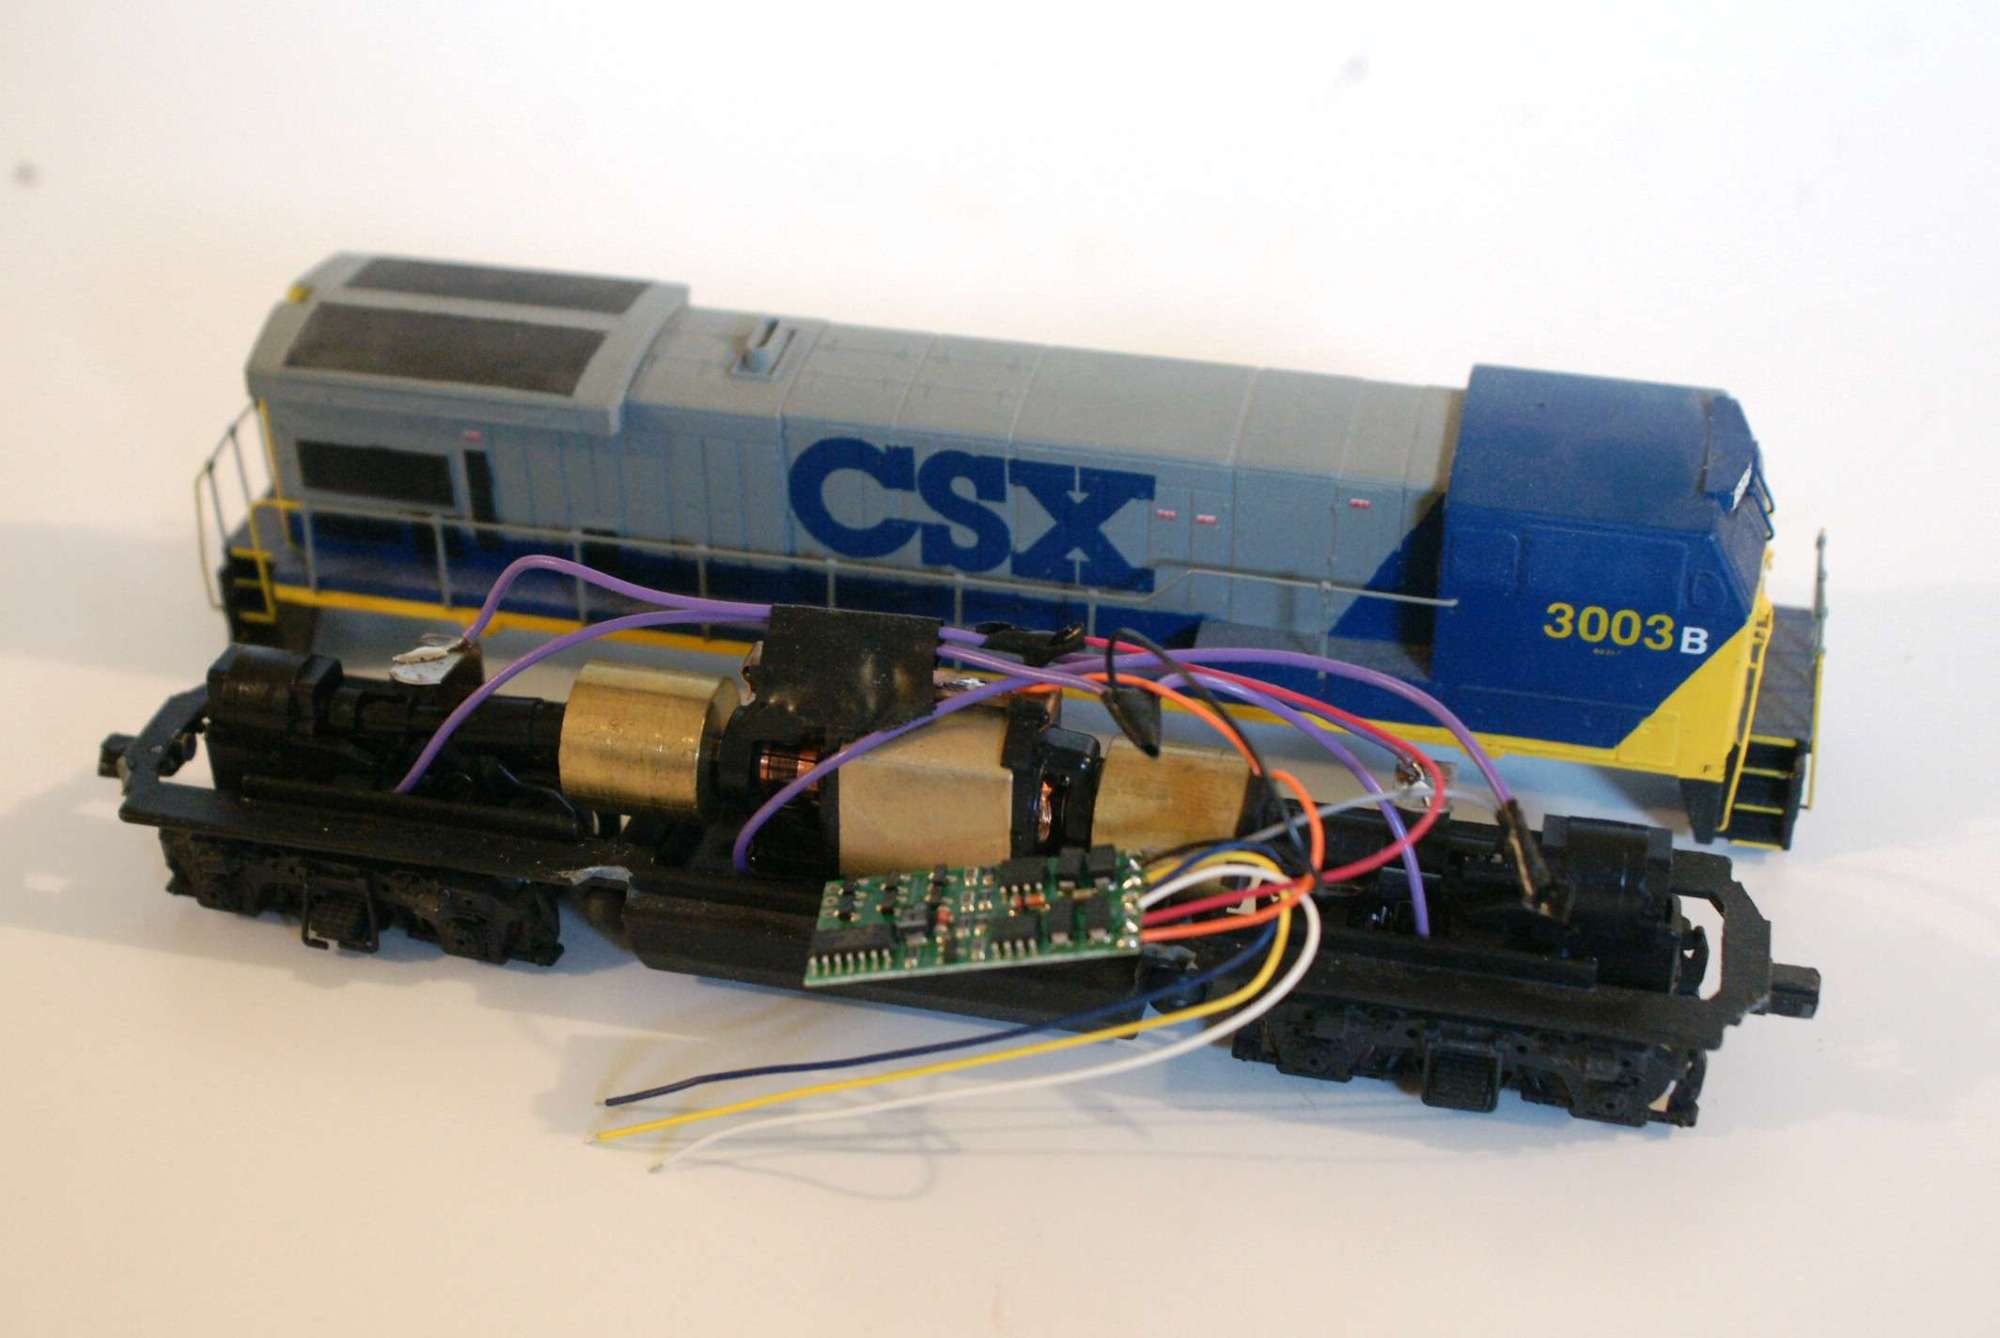 hight resolution of this nce decoder is installed on an athearn ho locomotive frame and motor the shell is a modified bachmann model the decoder and wires are held to the top